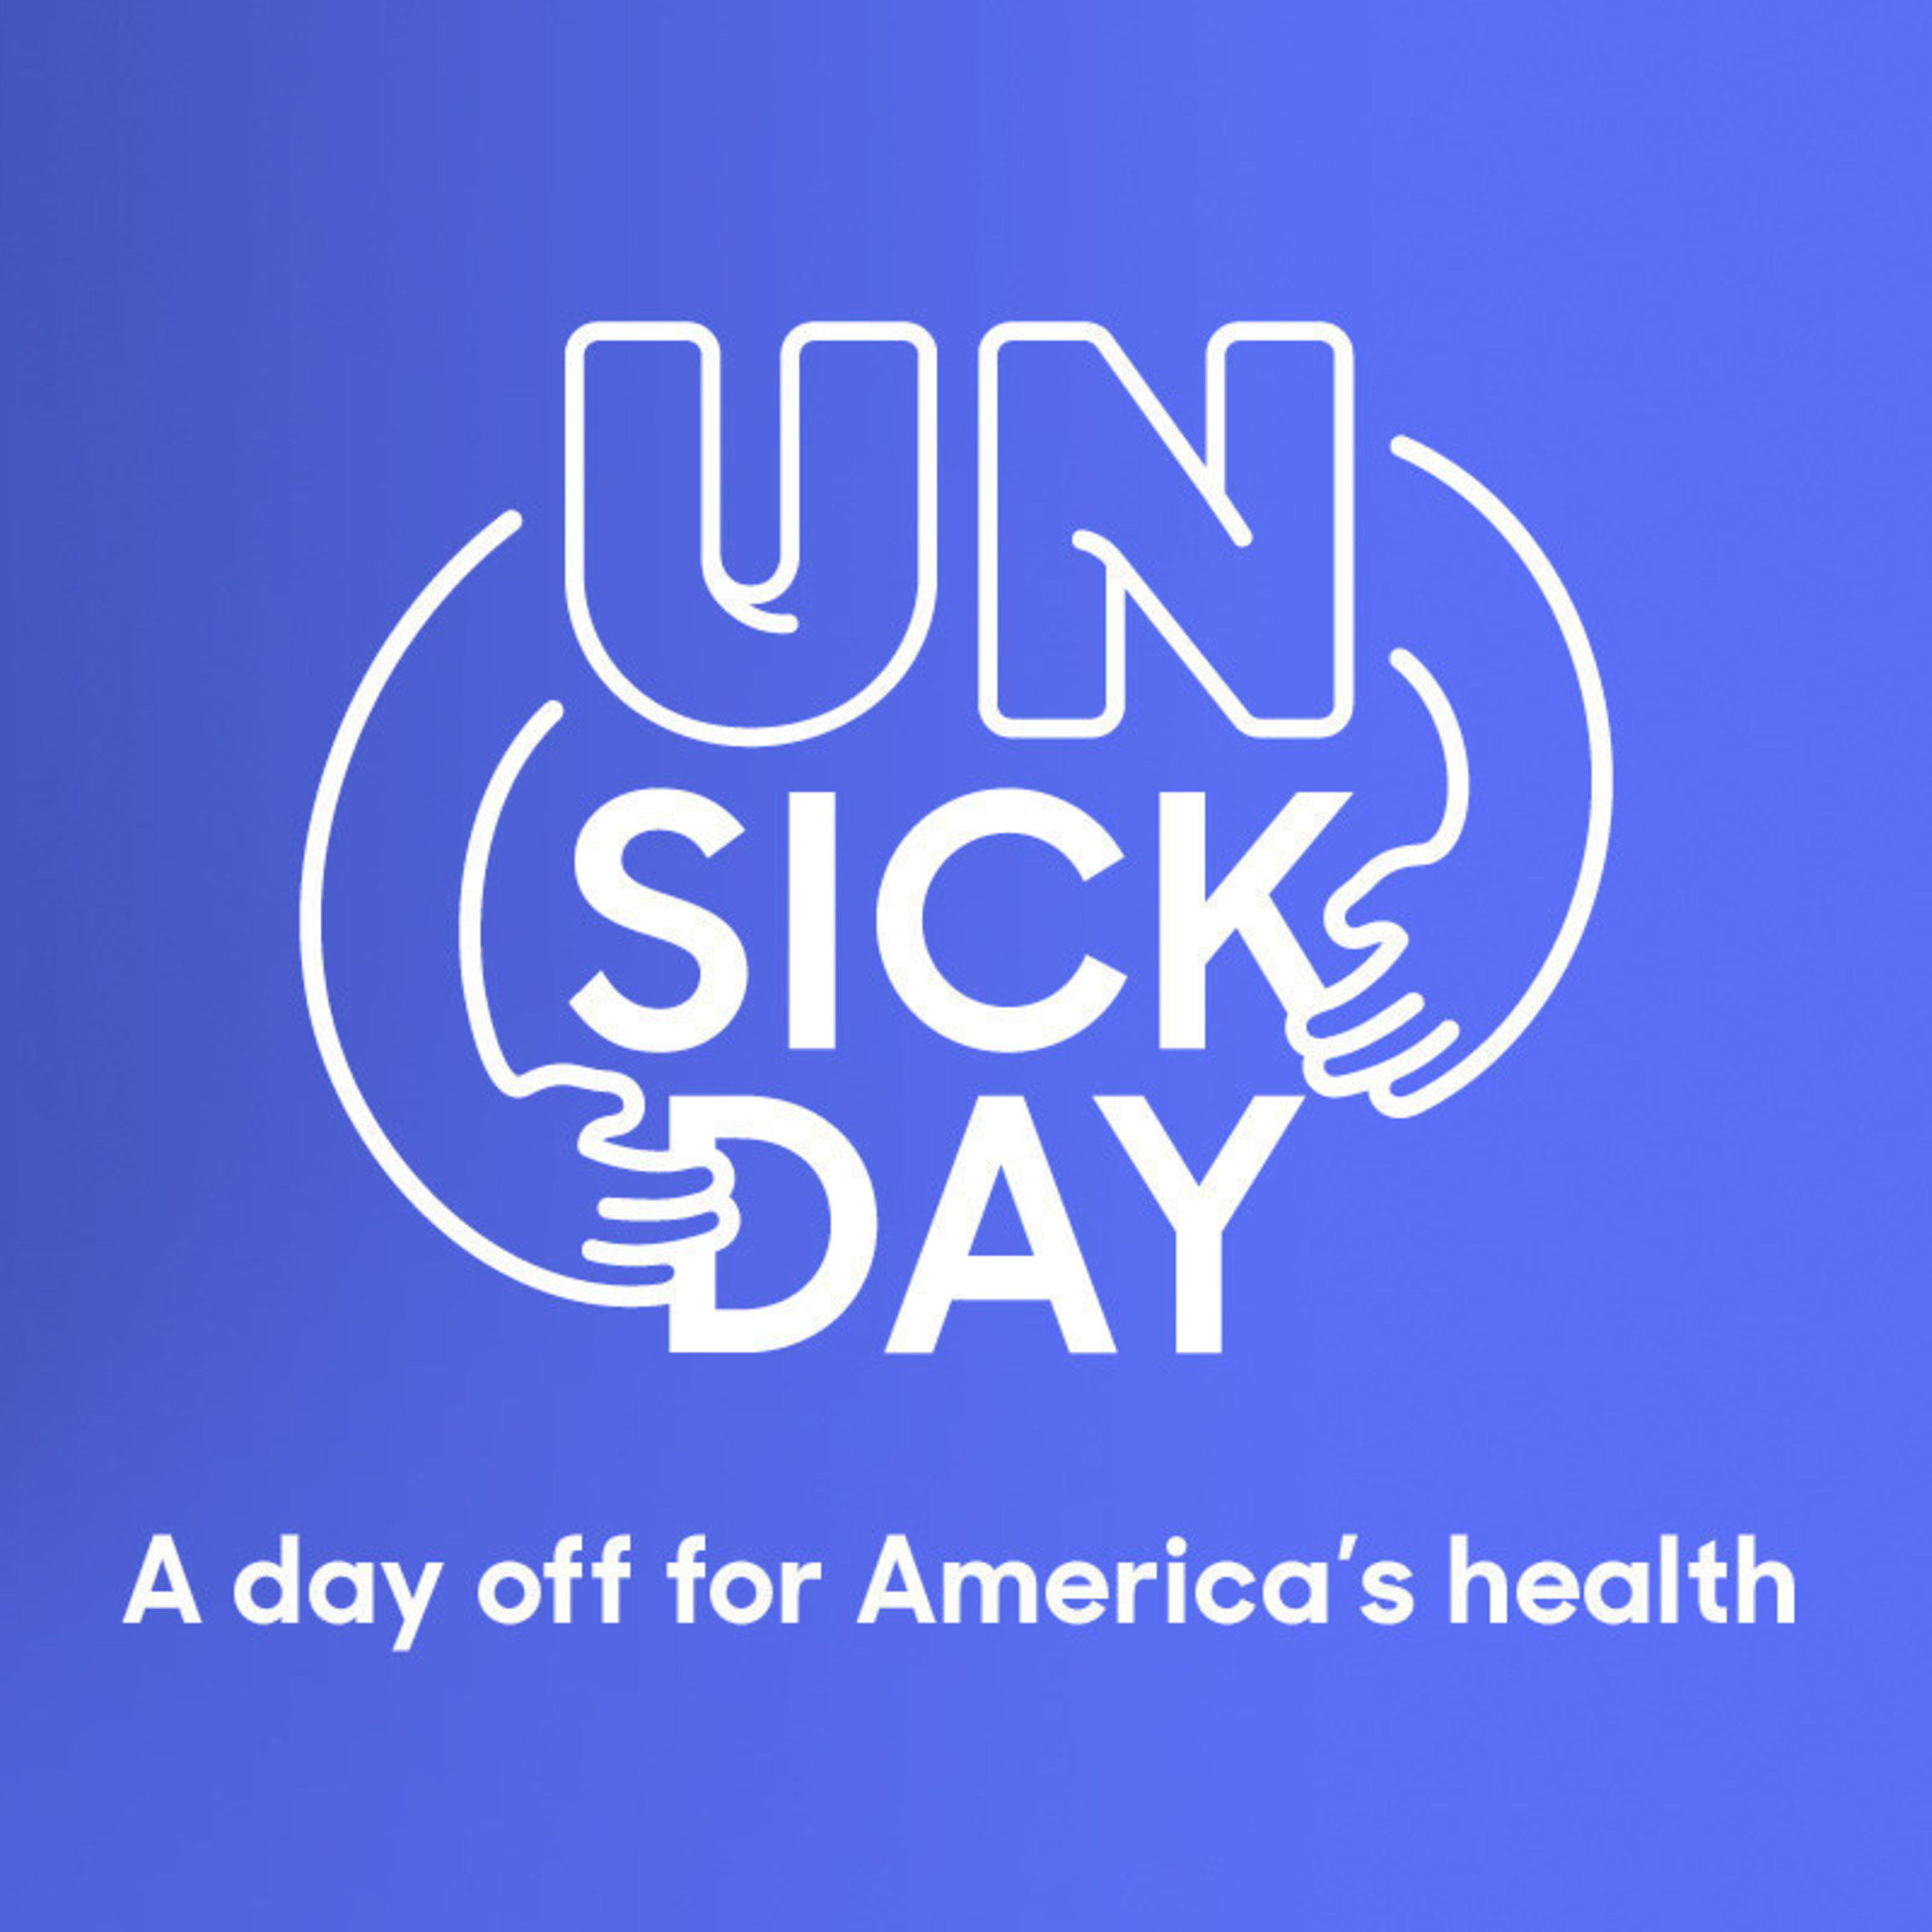 Zocdoc Introduces Unsick Day: A New Type of Day Off for